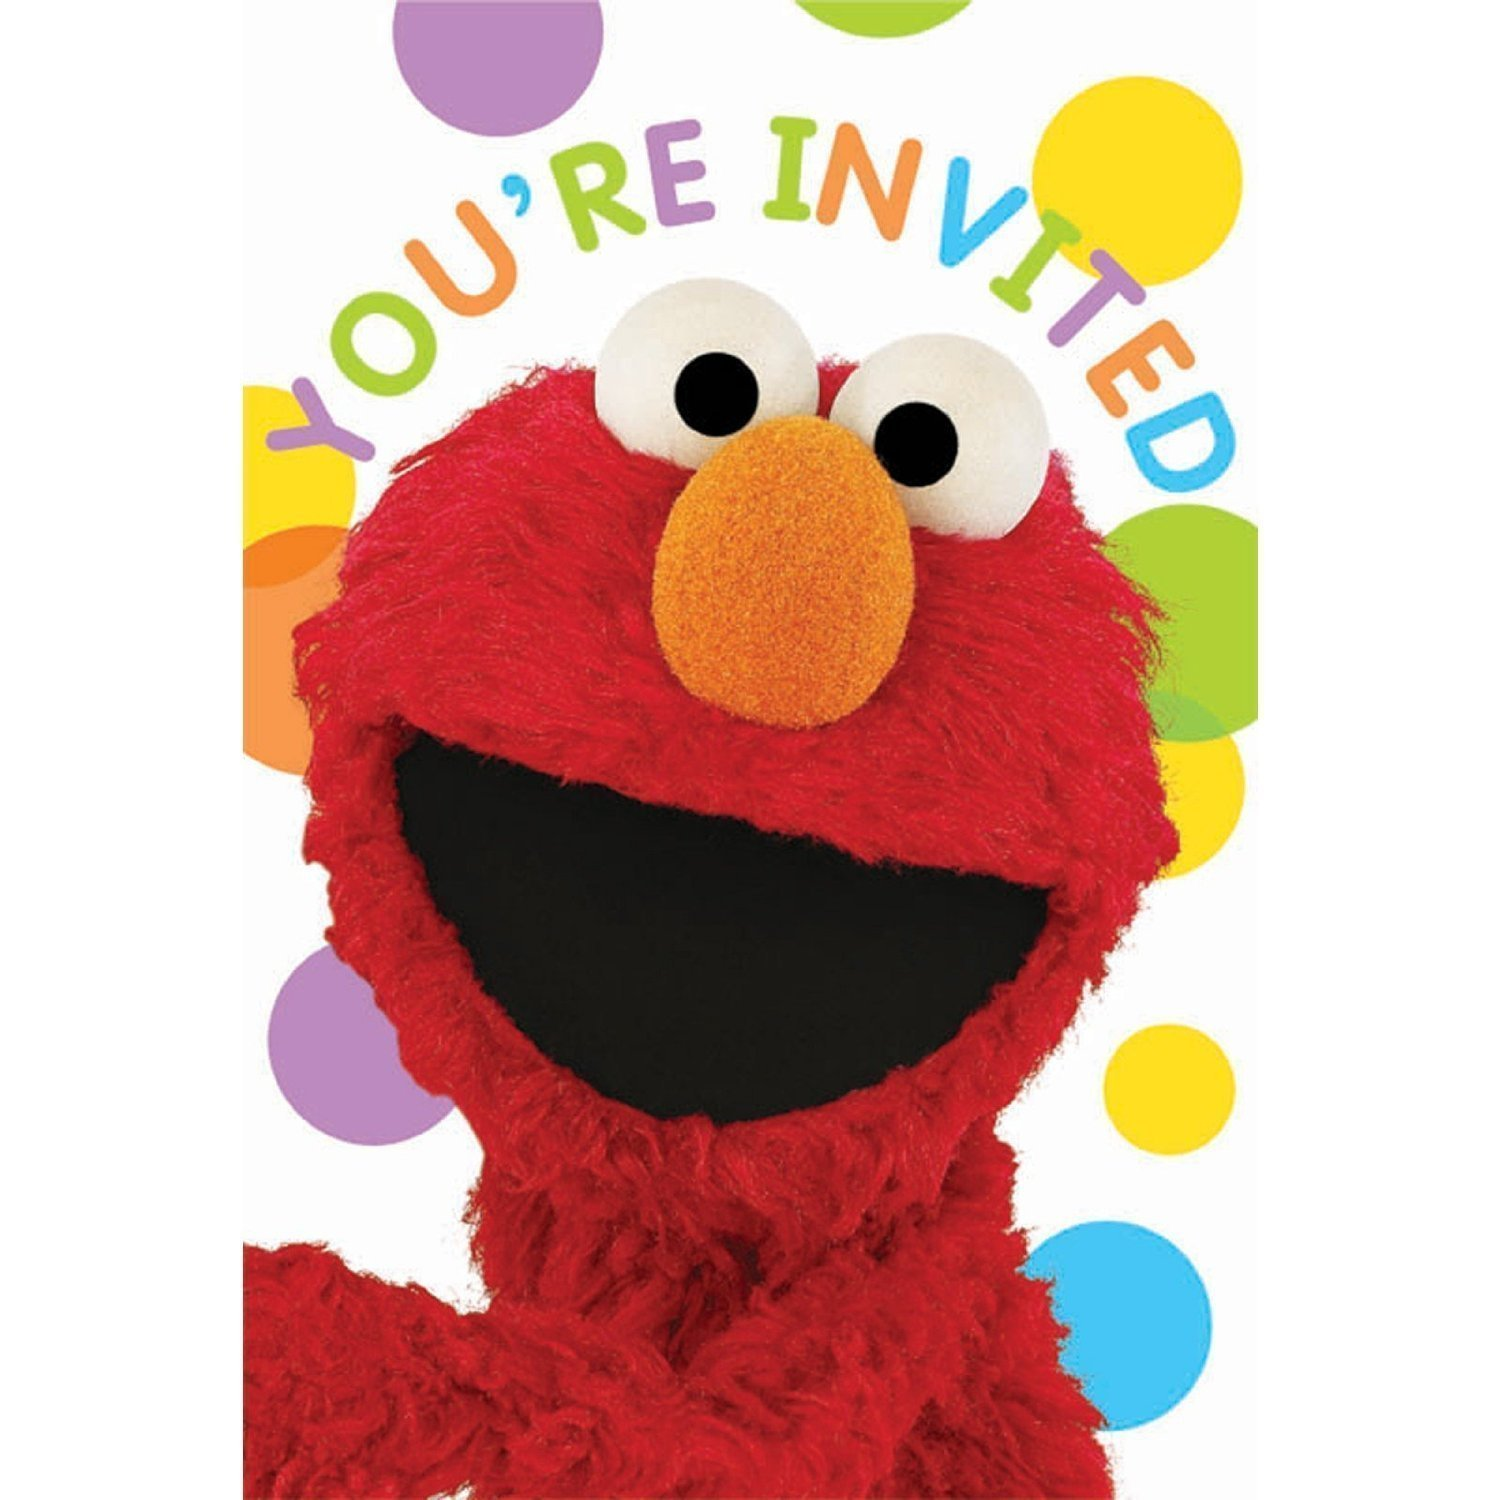 SESAME STREET set of 8 Party Invitation Cards and 8 Thank You Note Cards - You're Invited!